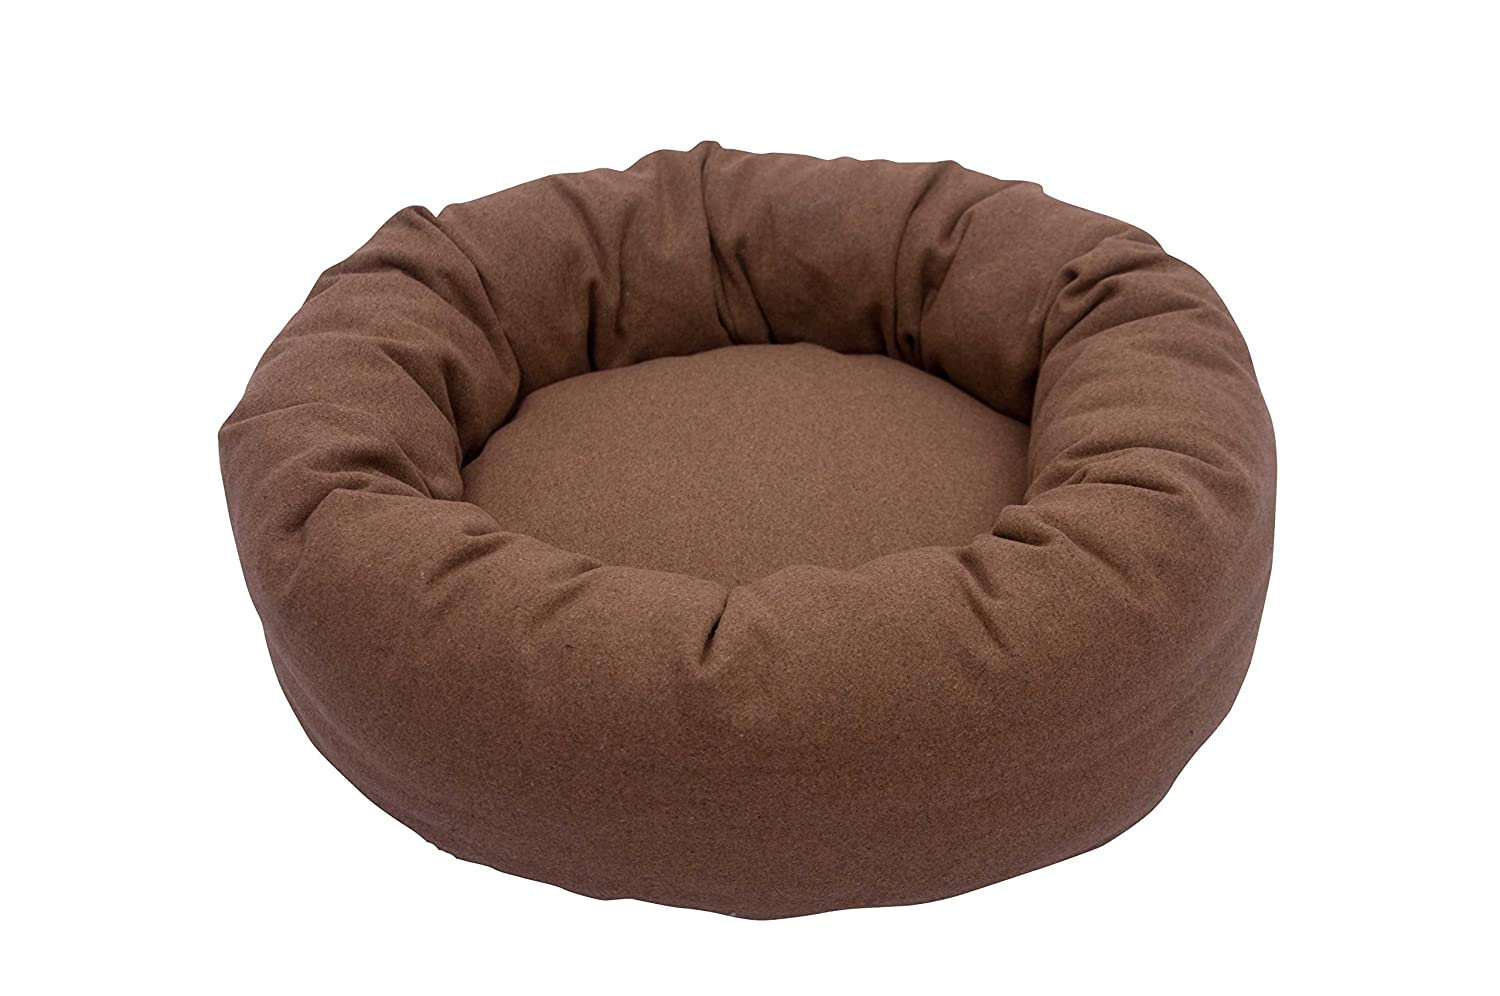 Light Brown Large Light Brown Large Iconic Pet Luxury Nestlez Round Pet Bed, Light Brown, Large